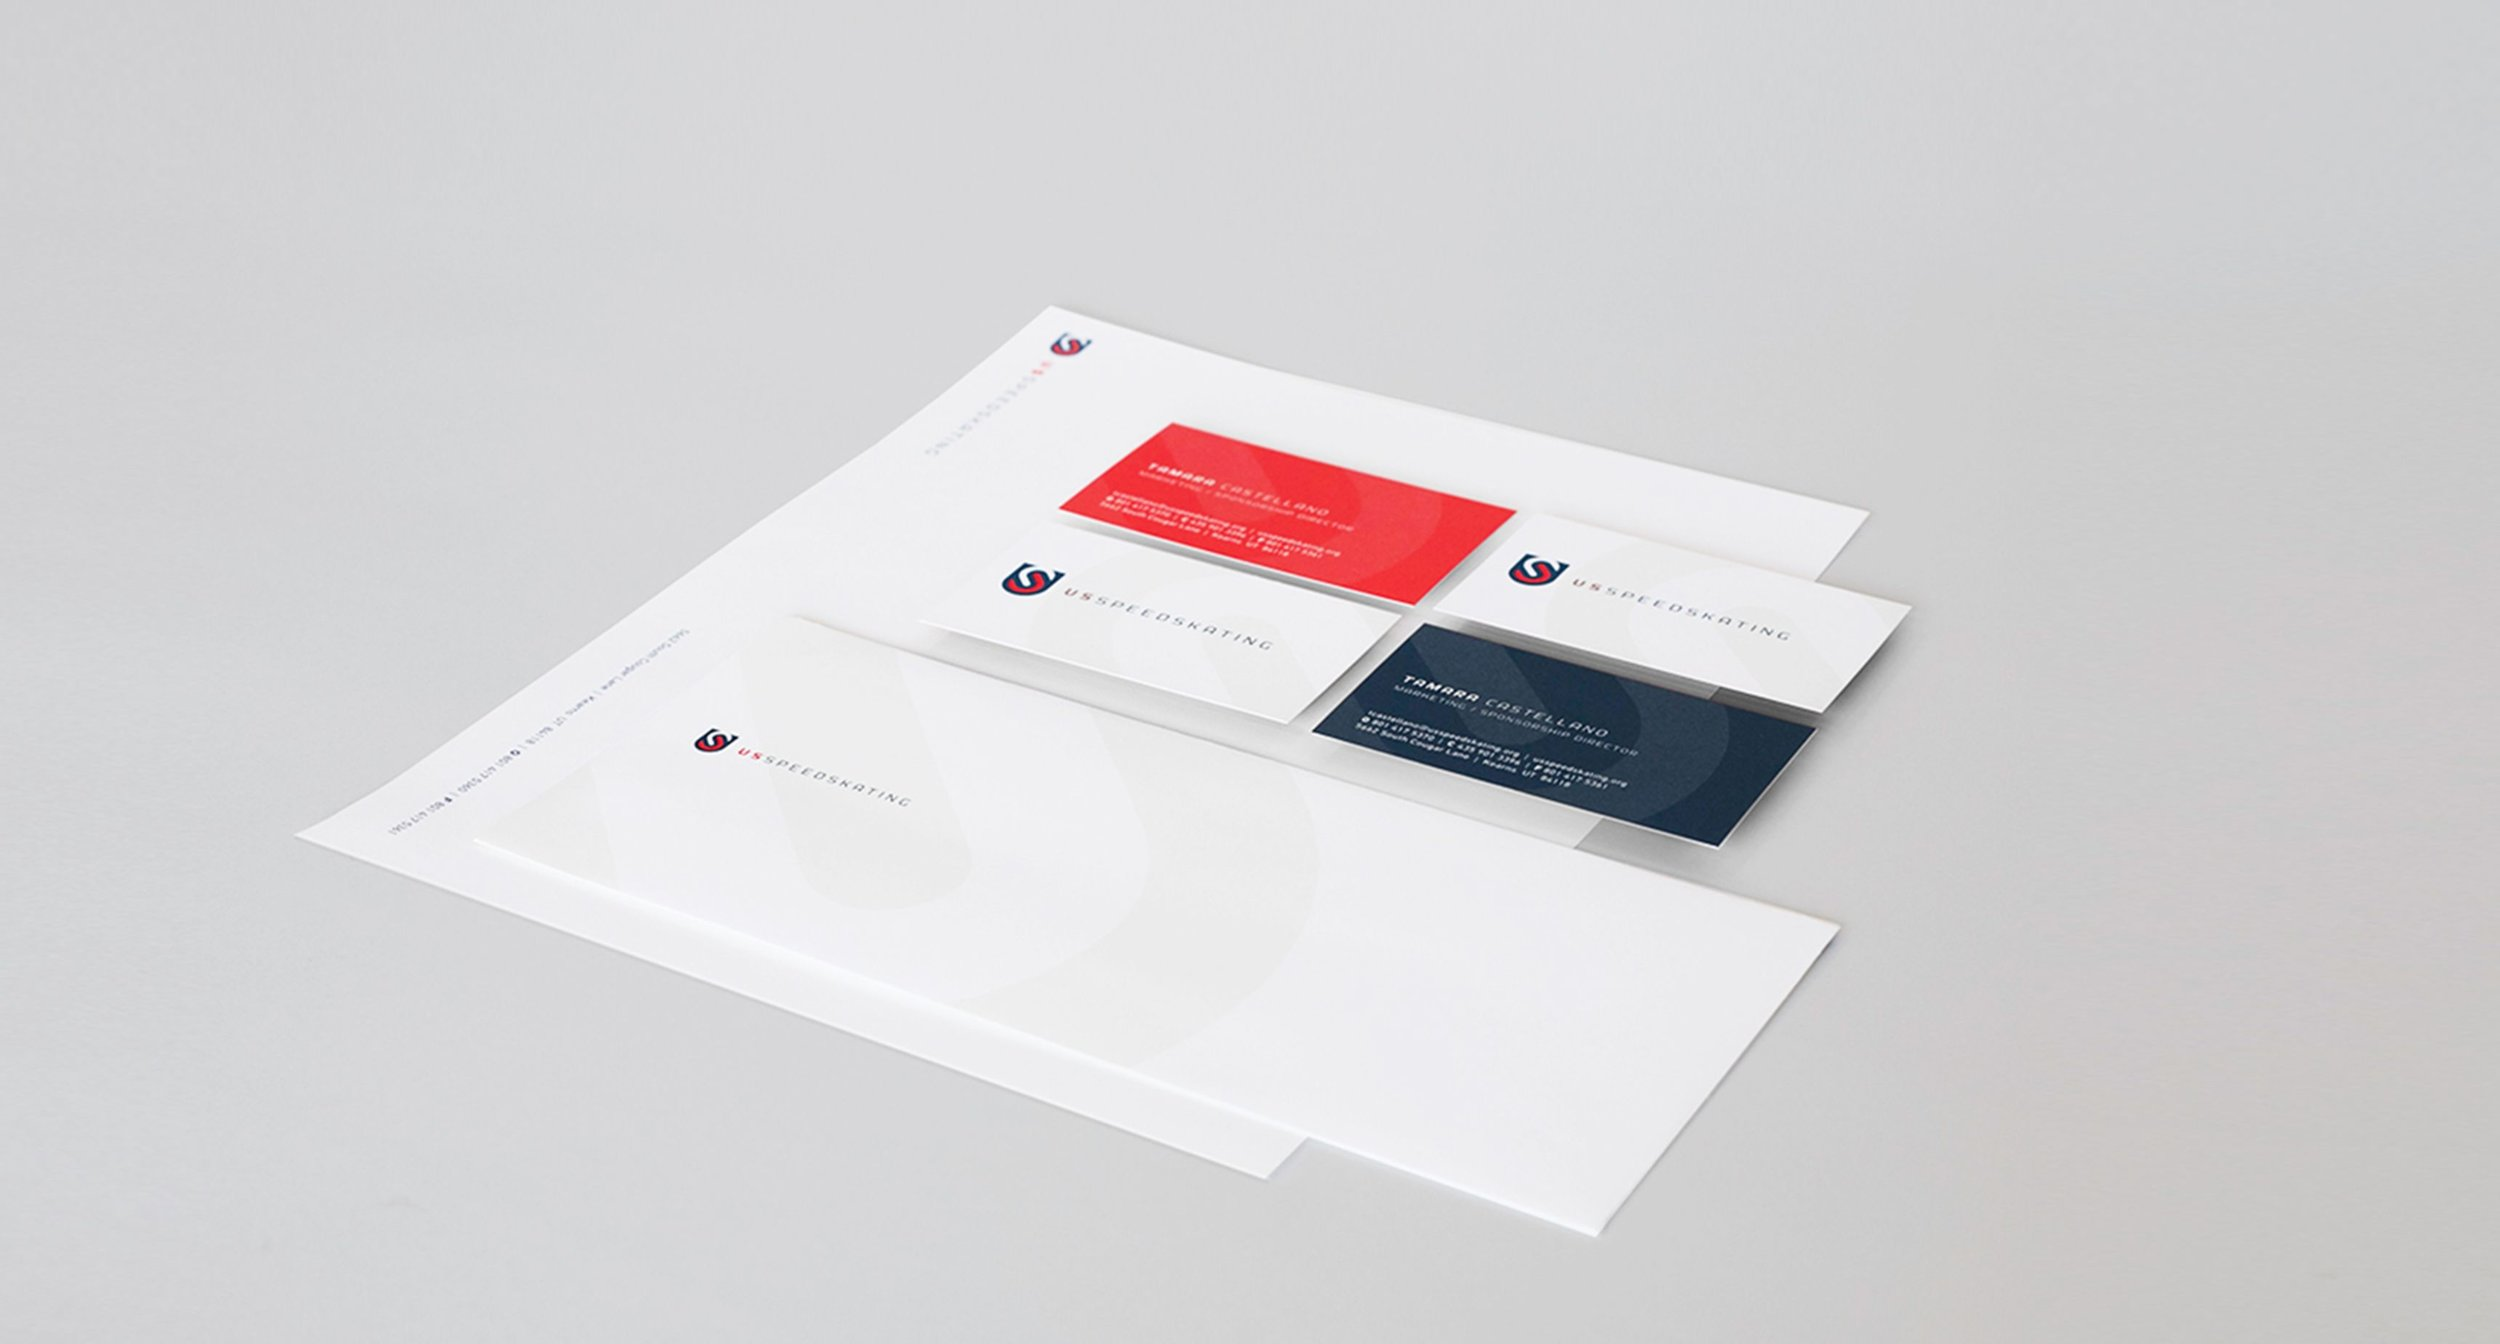 U.S. Speedskating Paper Collateral